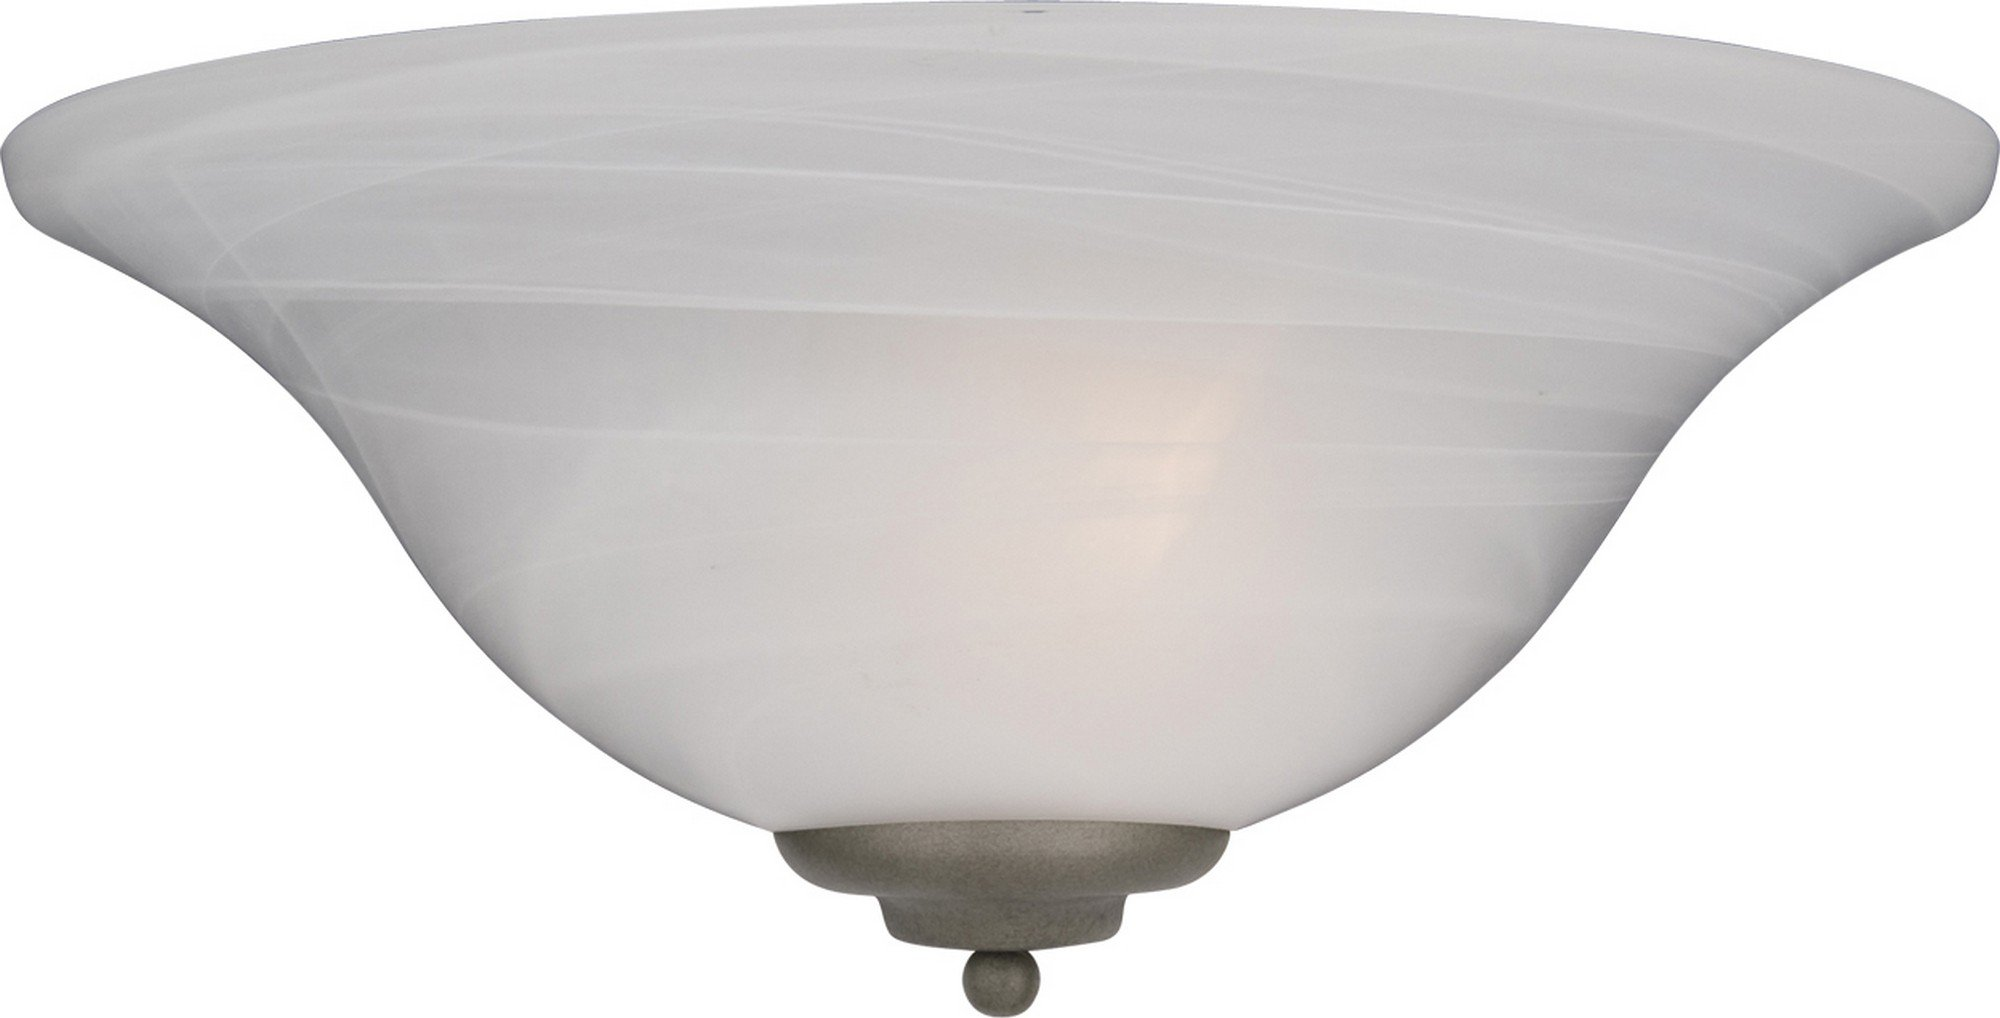 Maxim 20582MRPE Essentials 1-Light Wall Sconce, Pewter Finish, Marble Glass, MB Incandescent Incandescent Bulb , 40W Max., Dry Safety Rating, 2900K Color Temp, Standard Dimmable, Glass Shade Material, 9000 Rated Lumens by Maxim Lighting (Image #1)